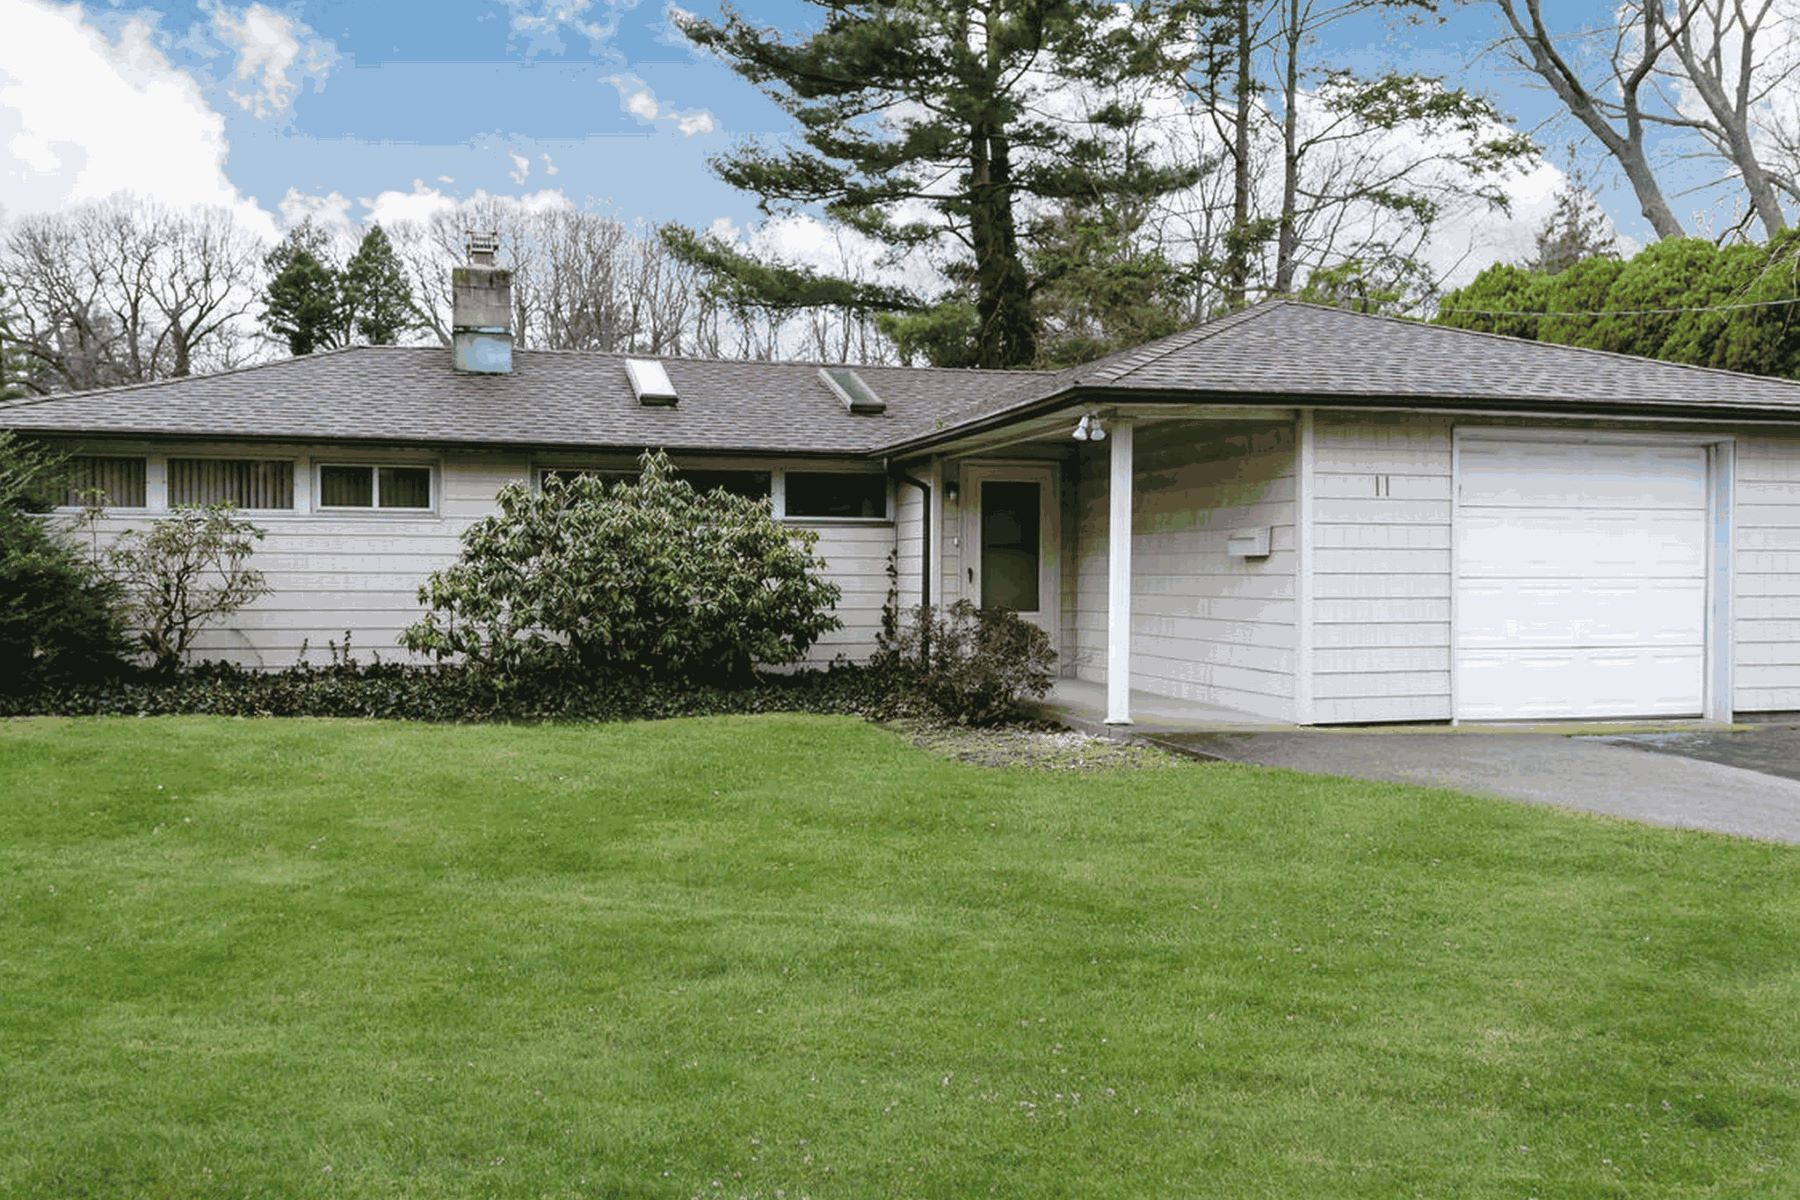 Single Family Home for Sale at 11 Park Ave , Greenvale, NY 11548 11 Park Ave, Greenvale, New York, 11548 United States